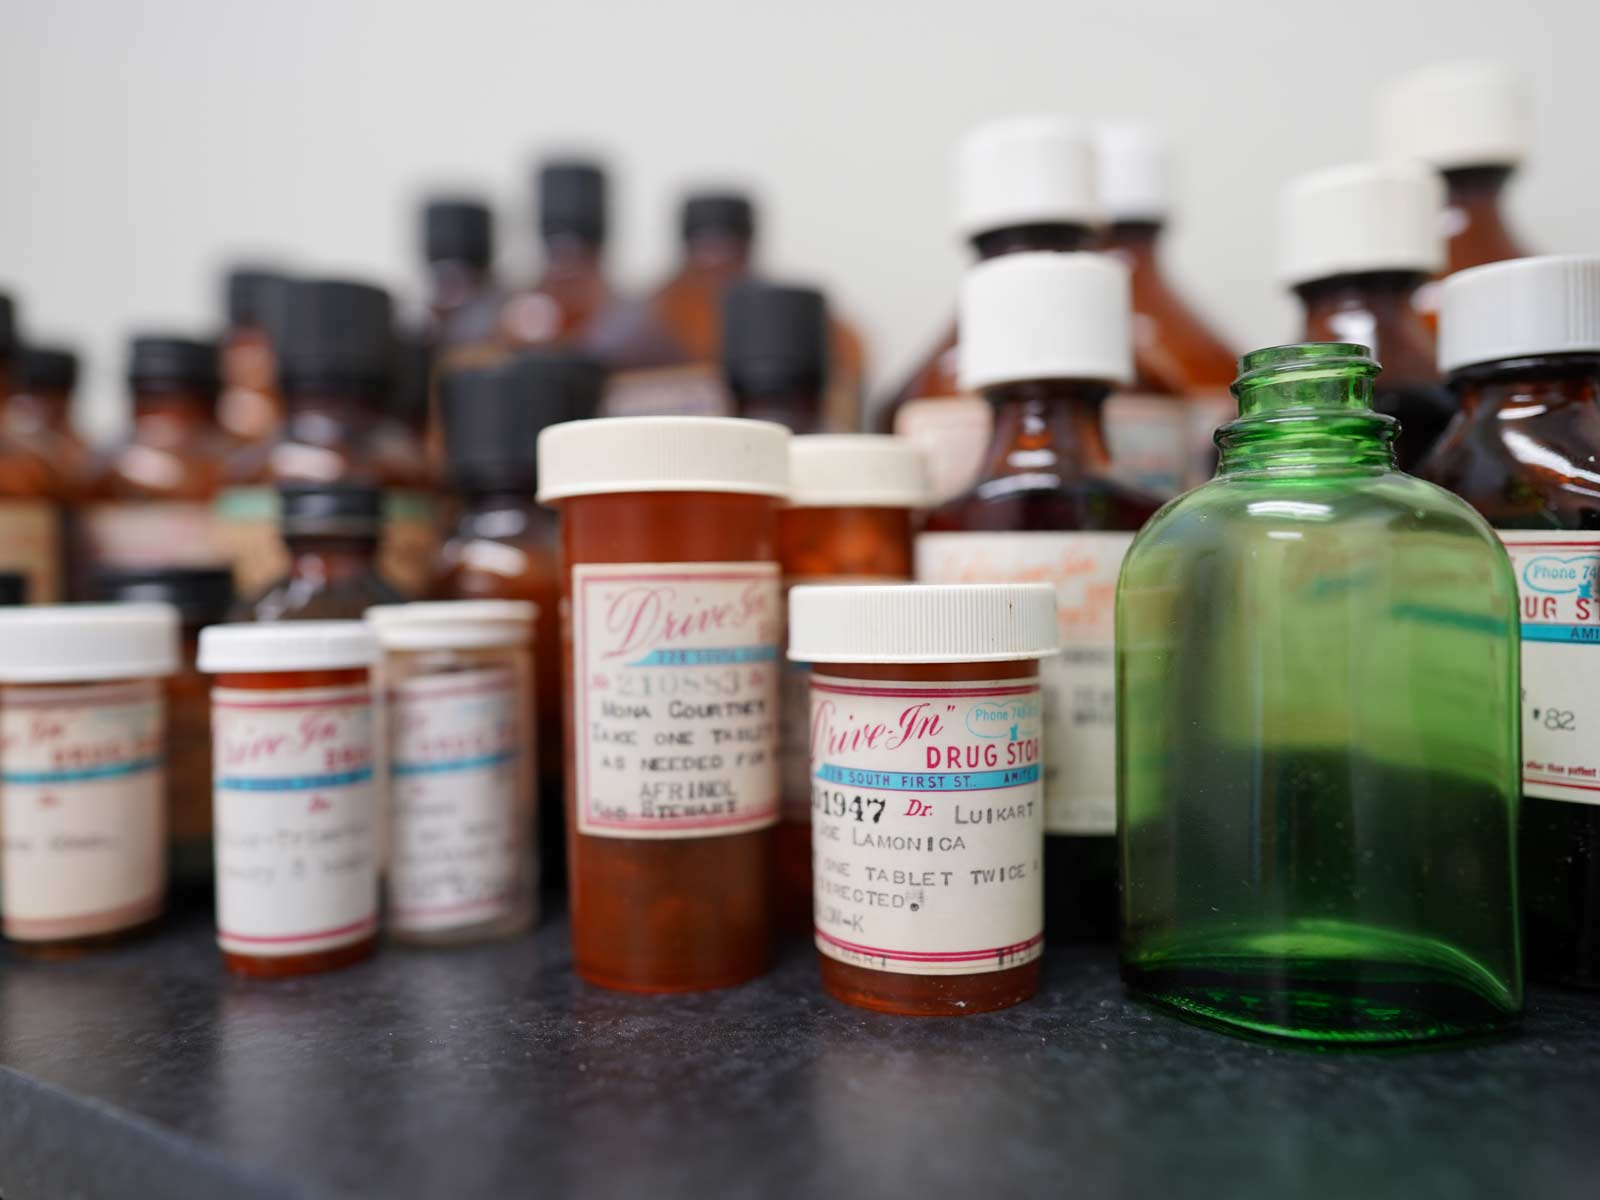 Prescriptions labeled by Drive-In Drug Store